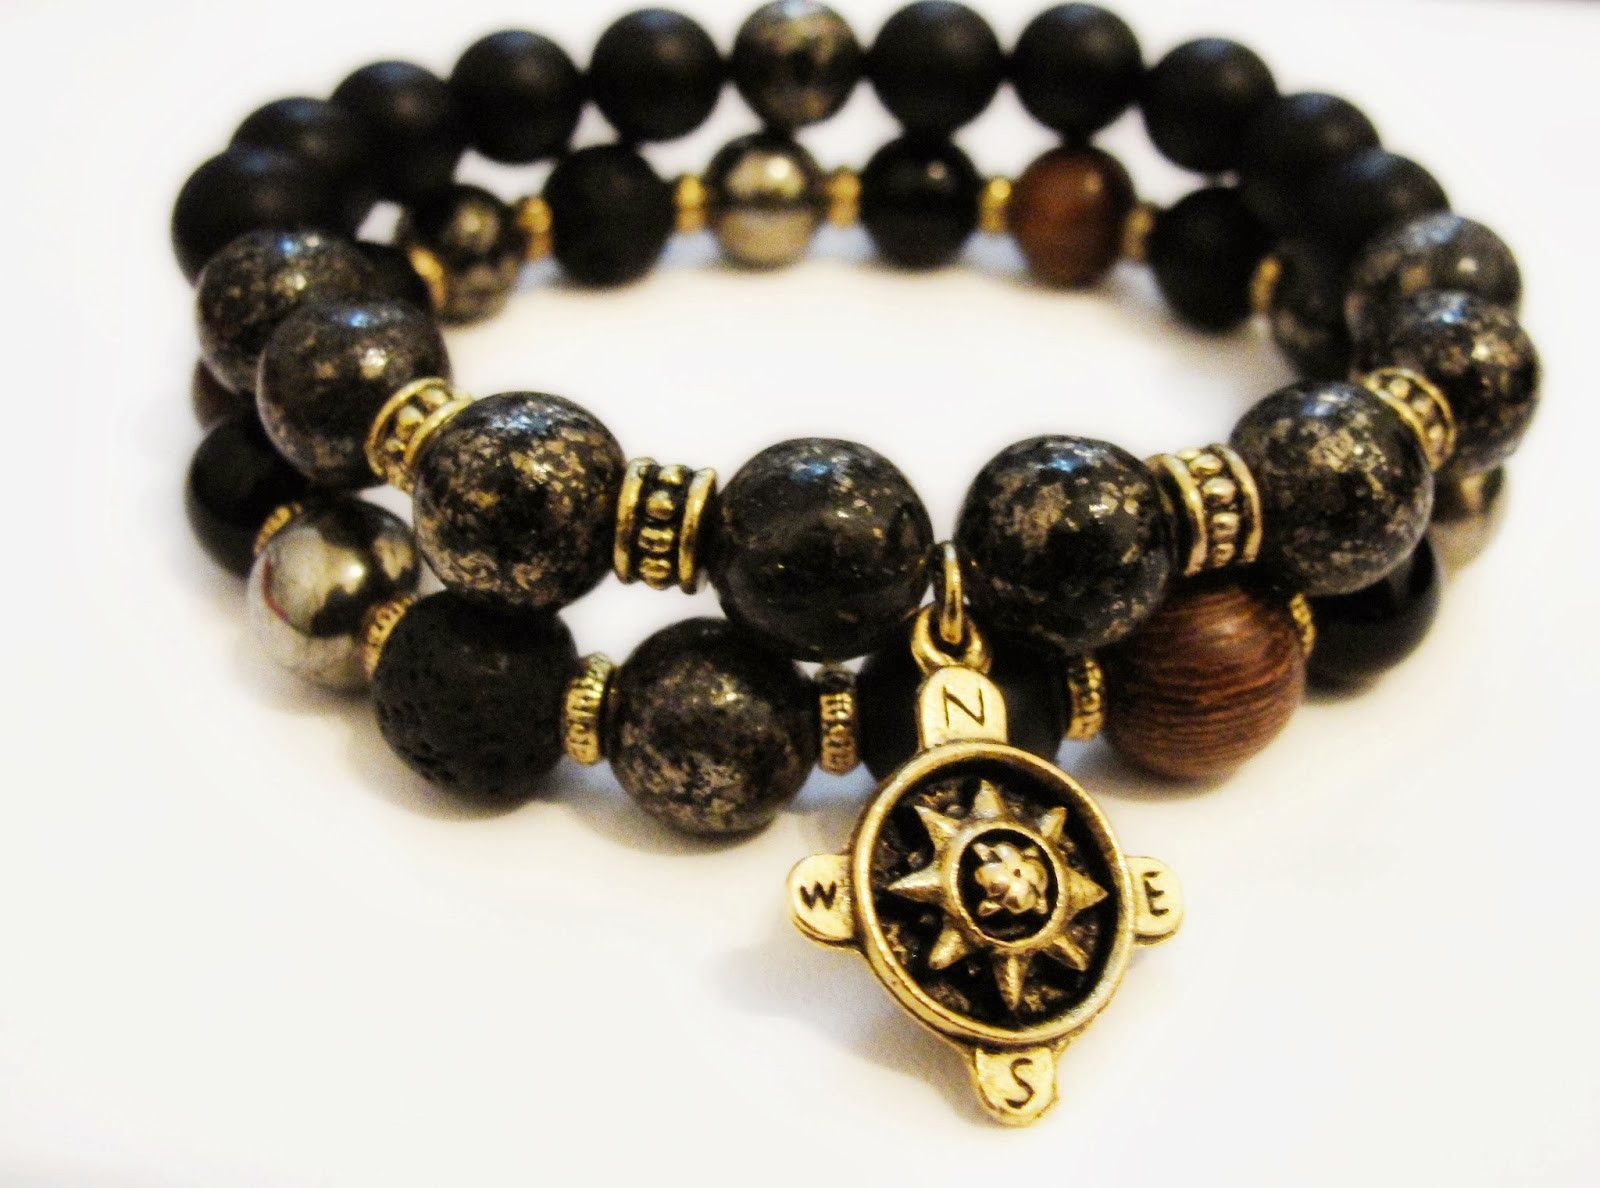 BOYBEADS- Custom Beaded Bracelets for Men New York, NY ...